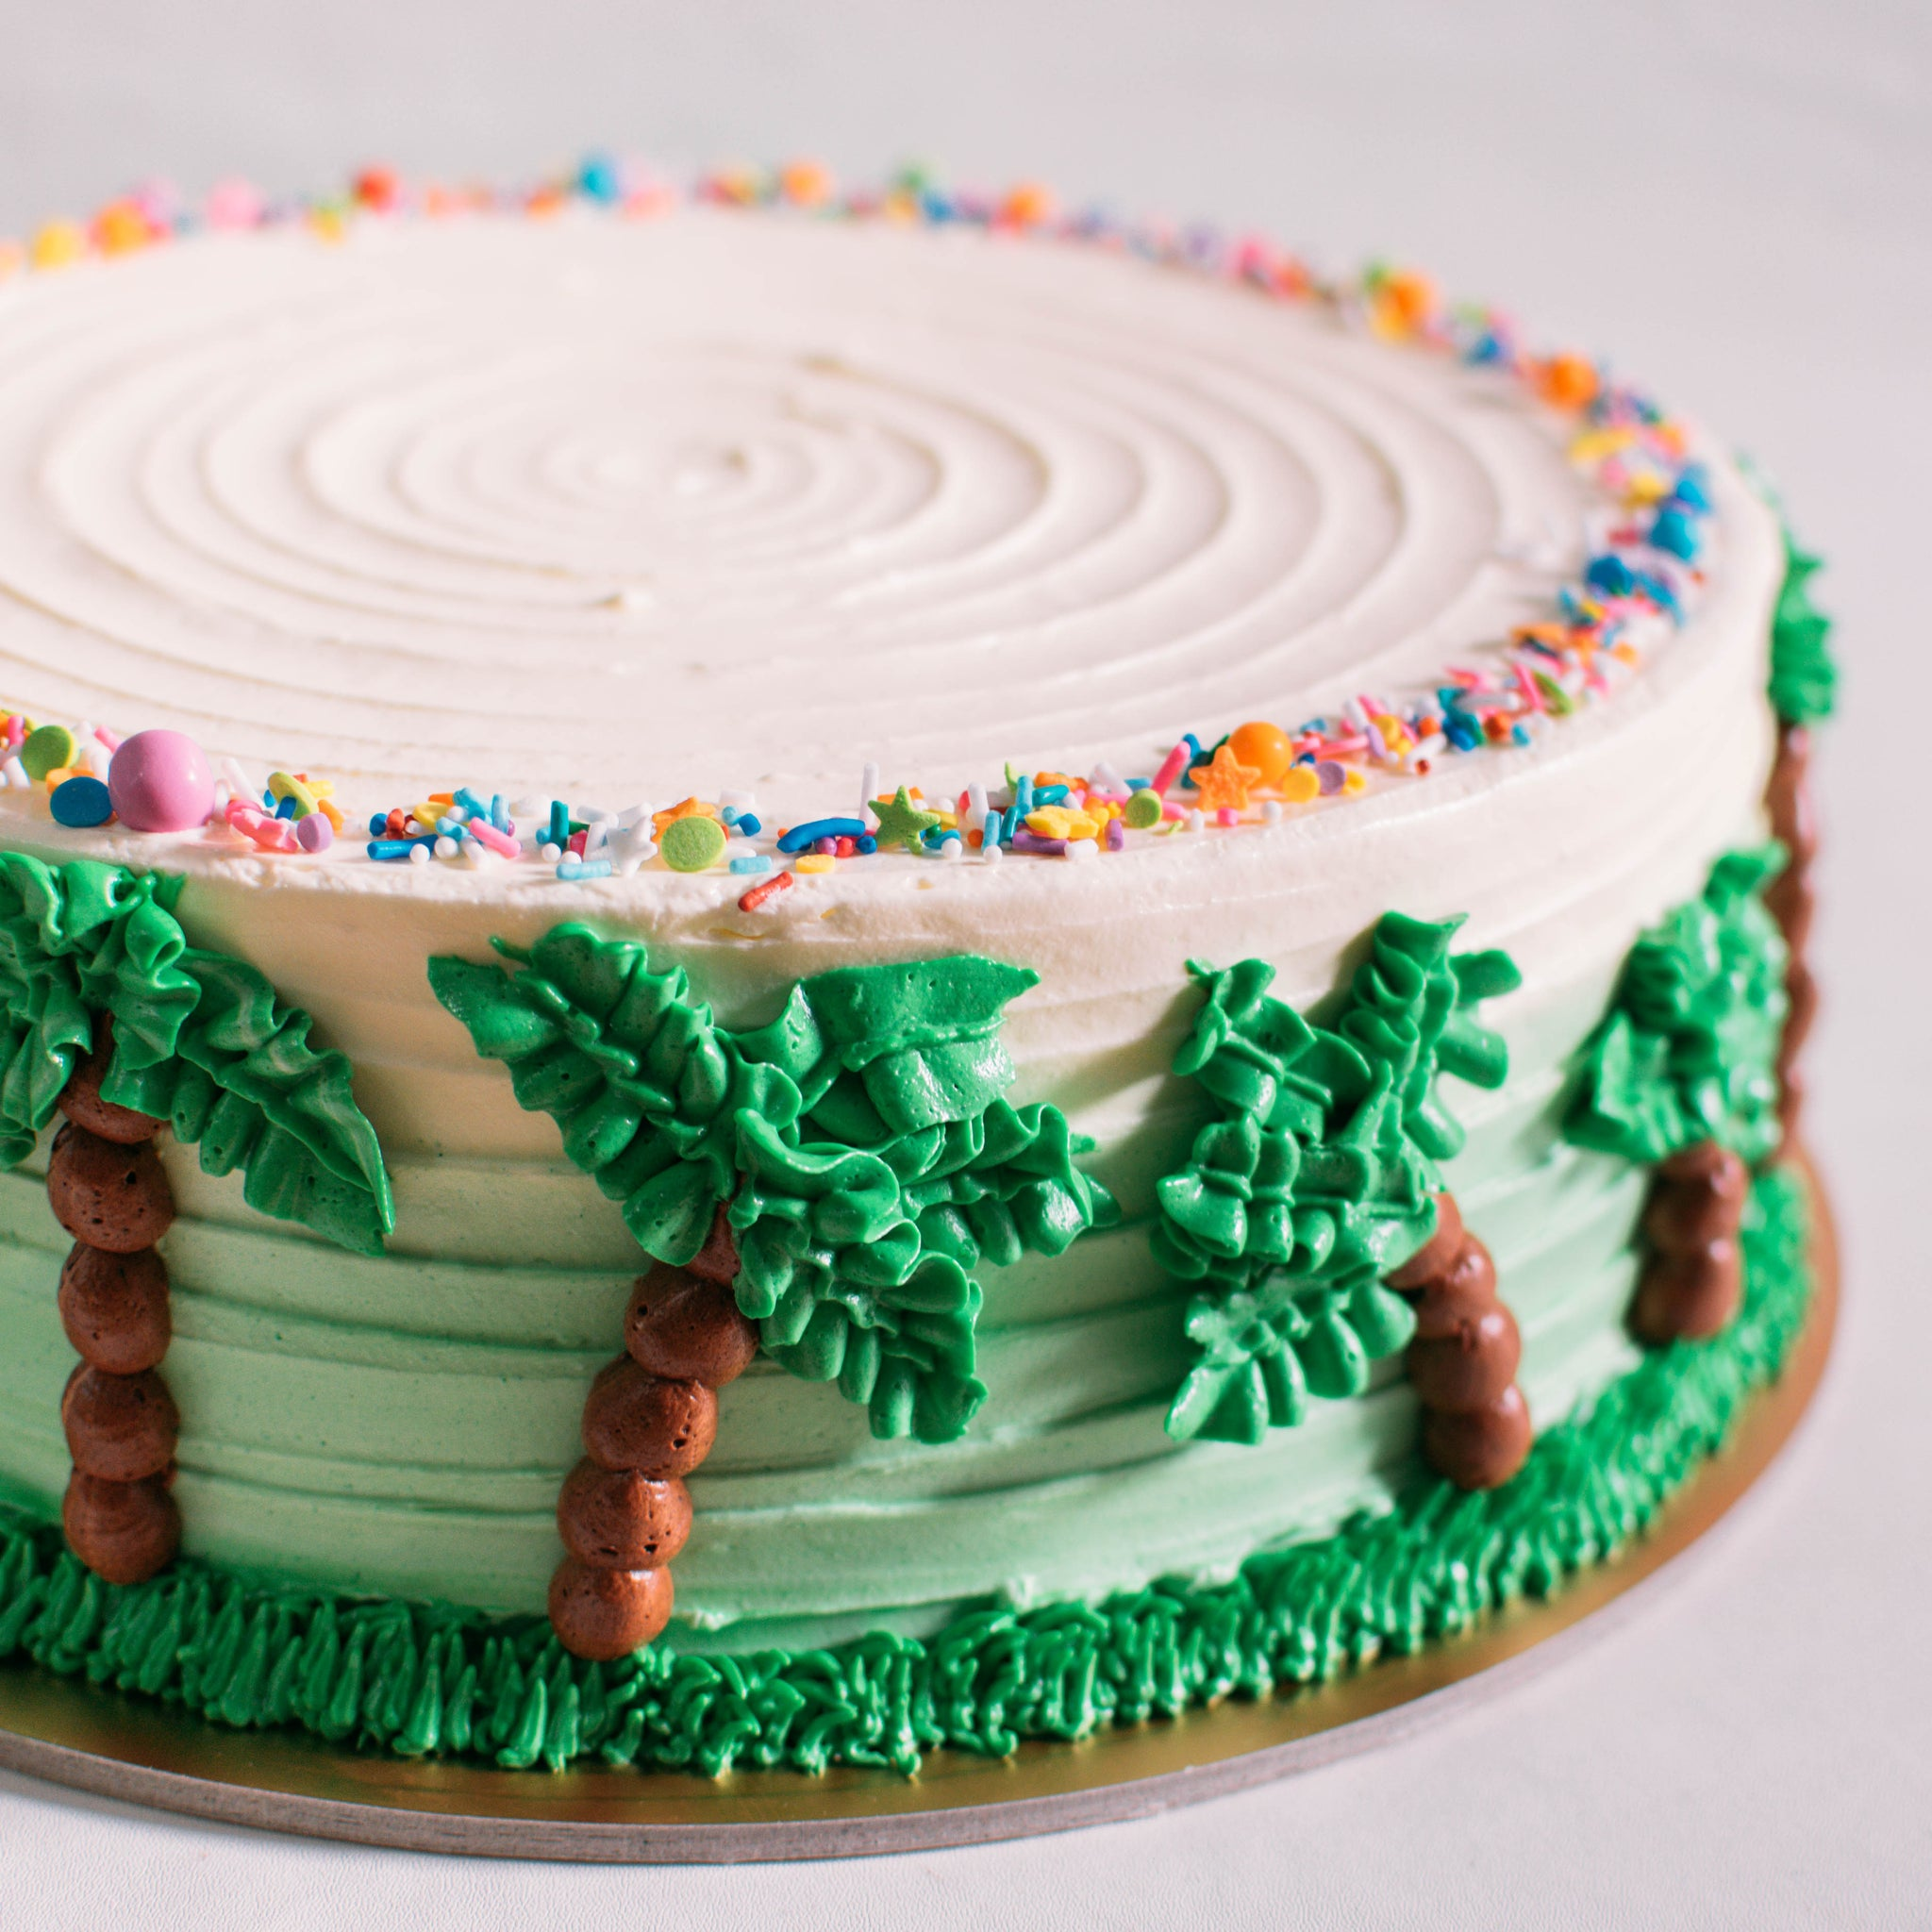 Pastel Green Ombre Cake with Piped Palm Trees - Custom Bakes by Edith Patisserie